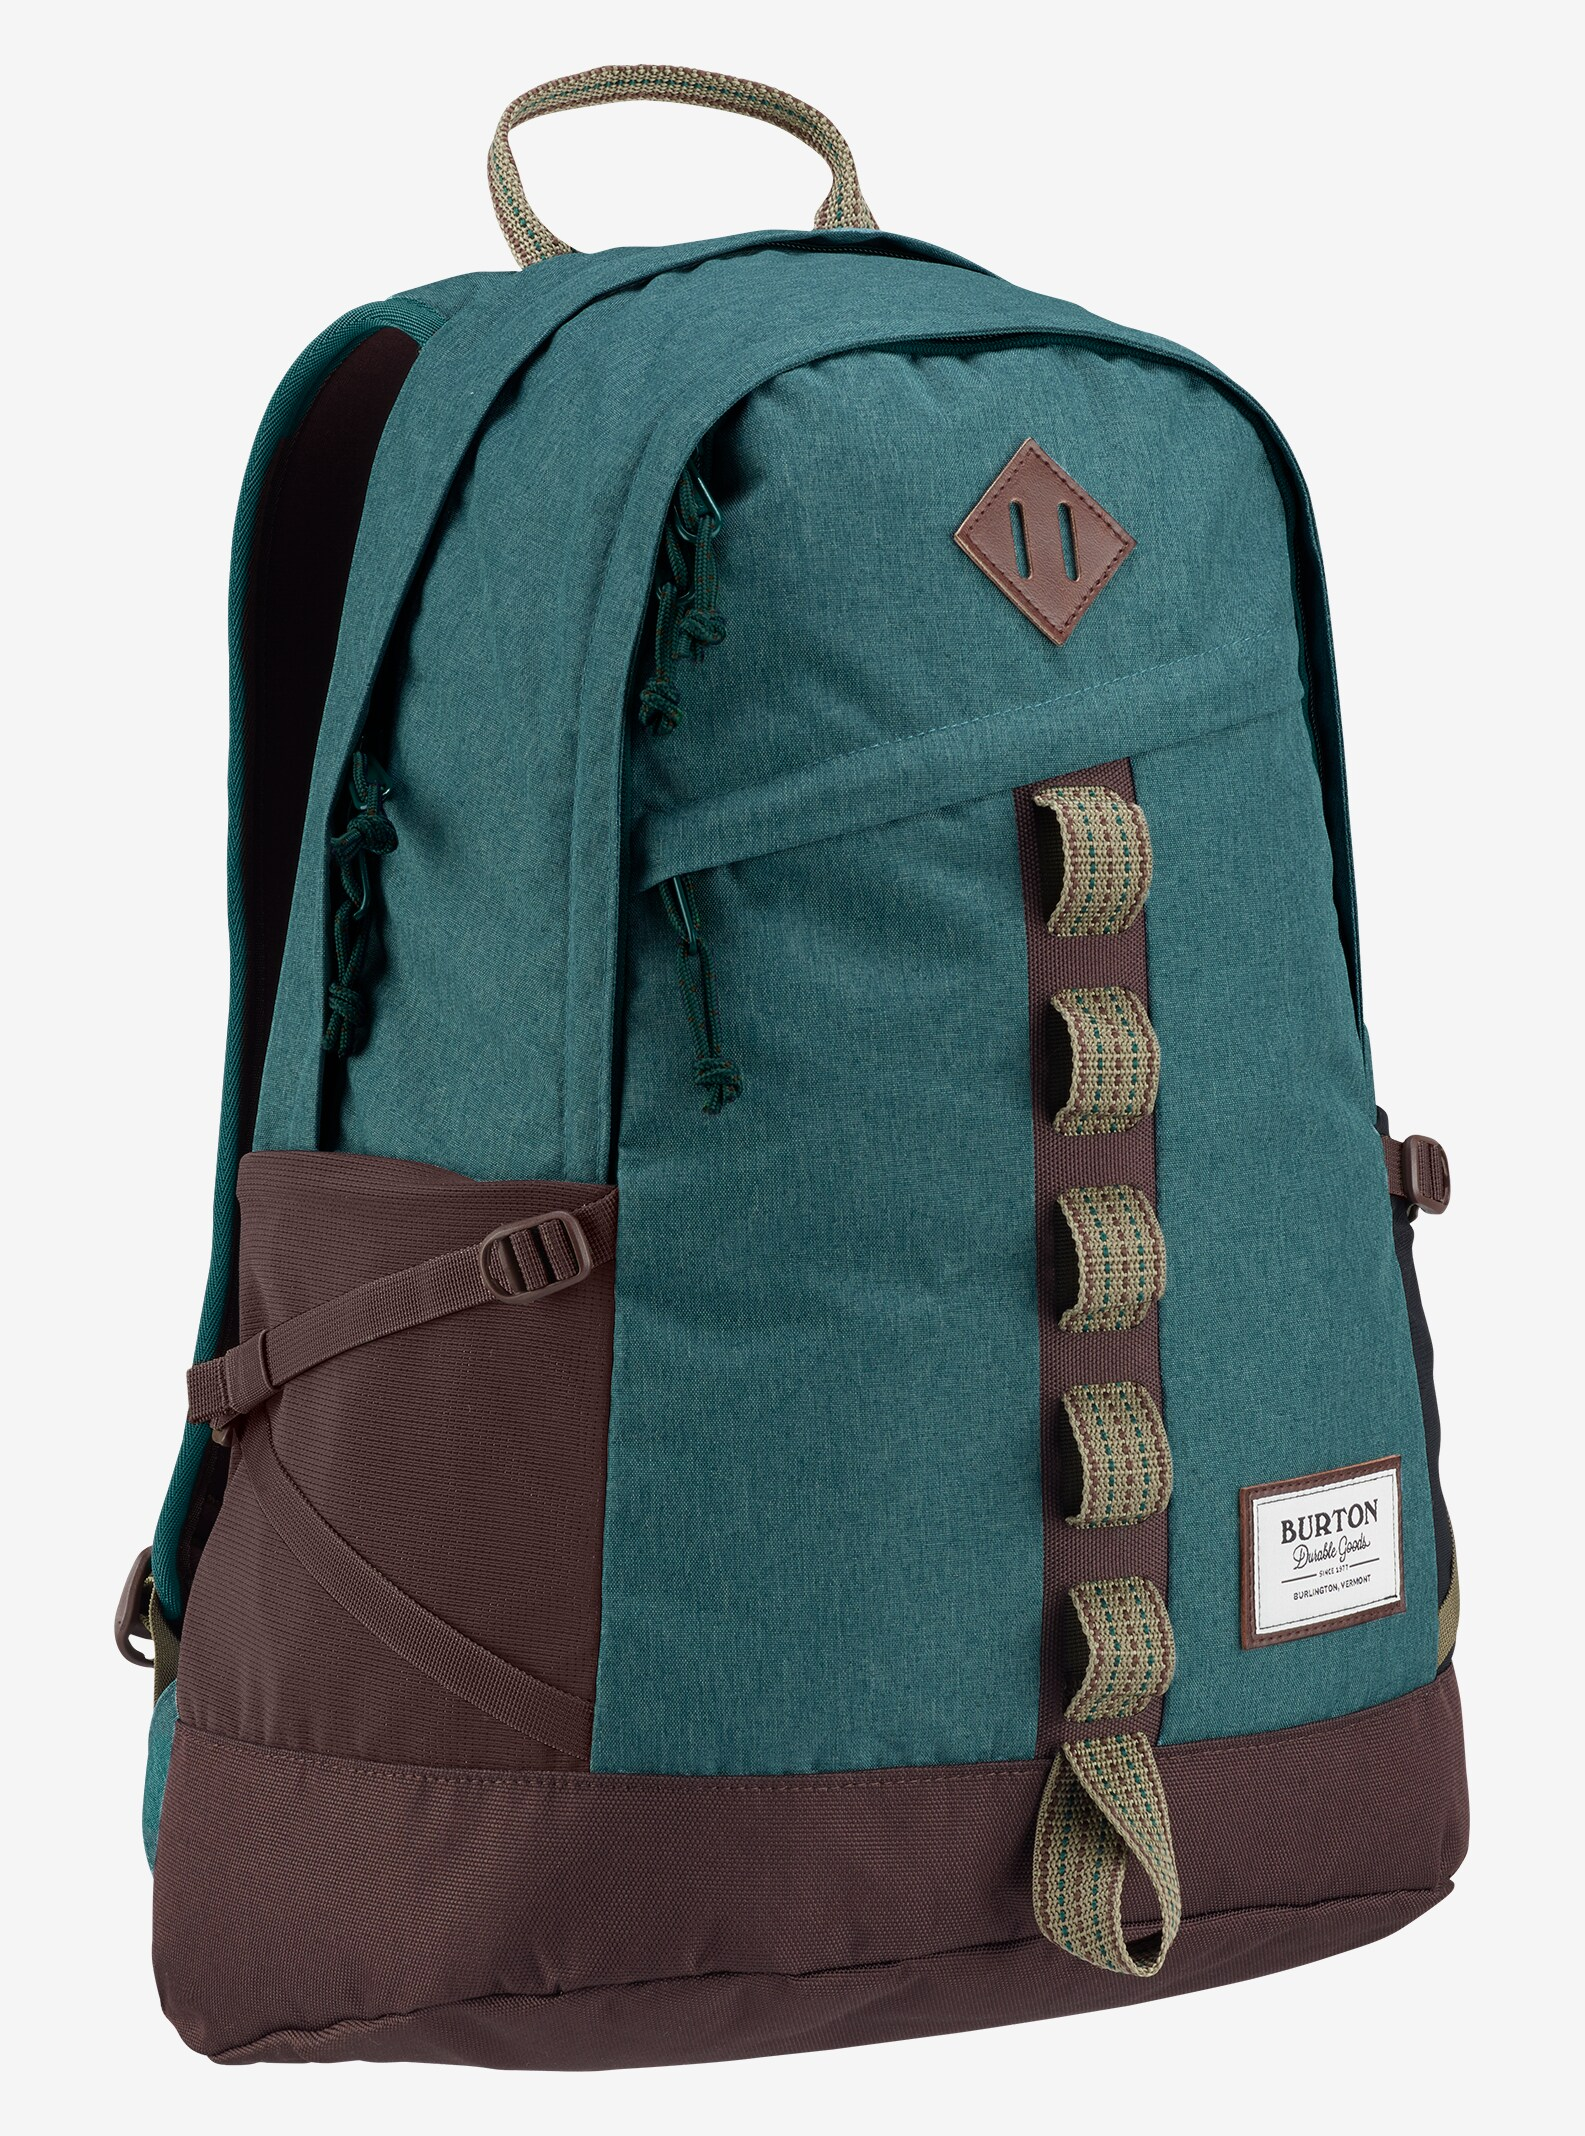 dcaf66c4ad94 Teal And Grey Paisley Backpack- Fenix Toulouse Handball